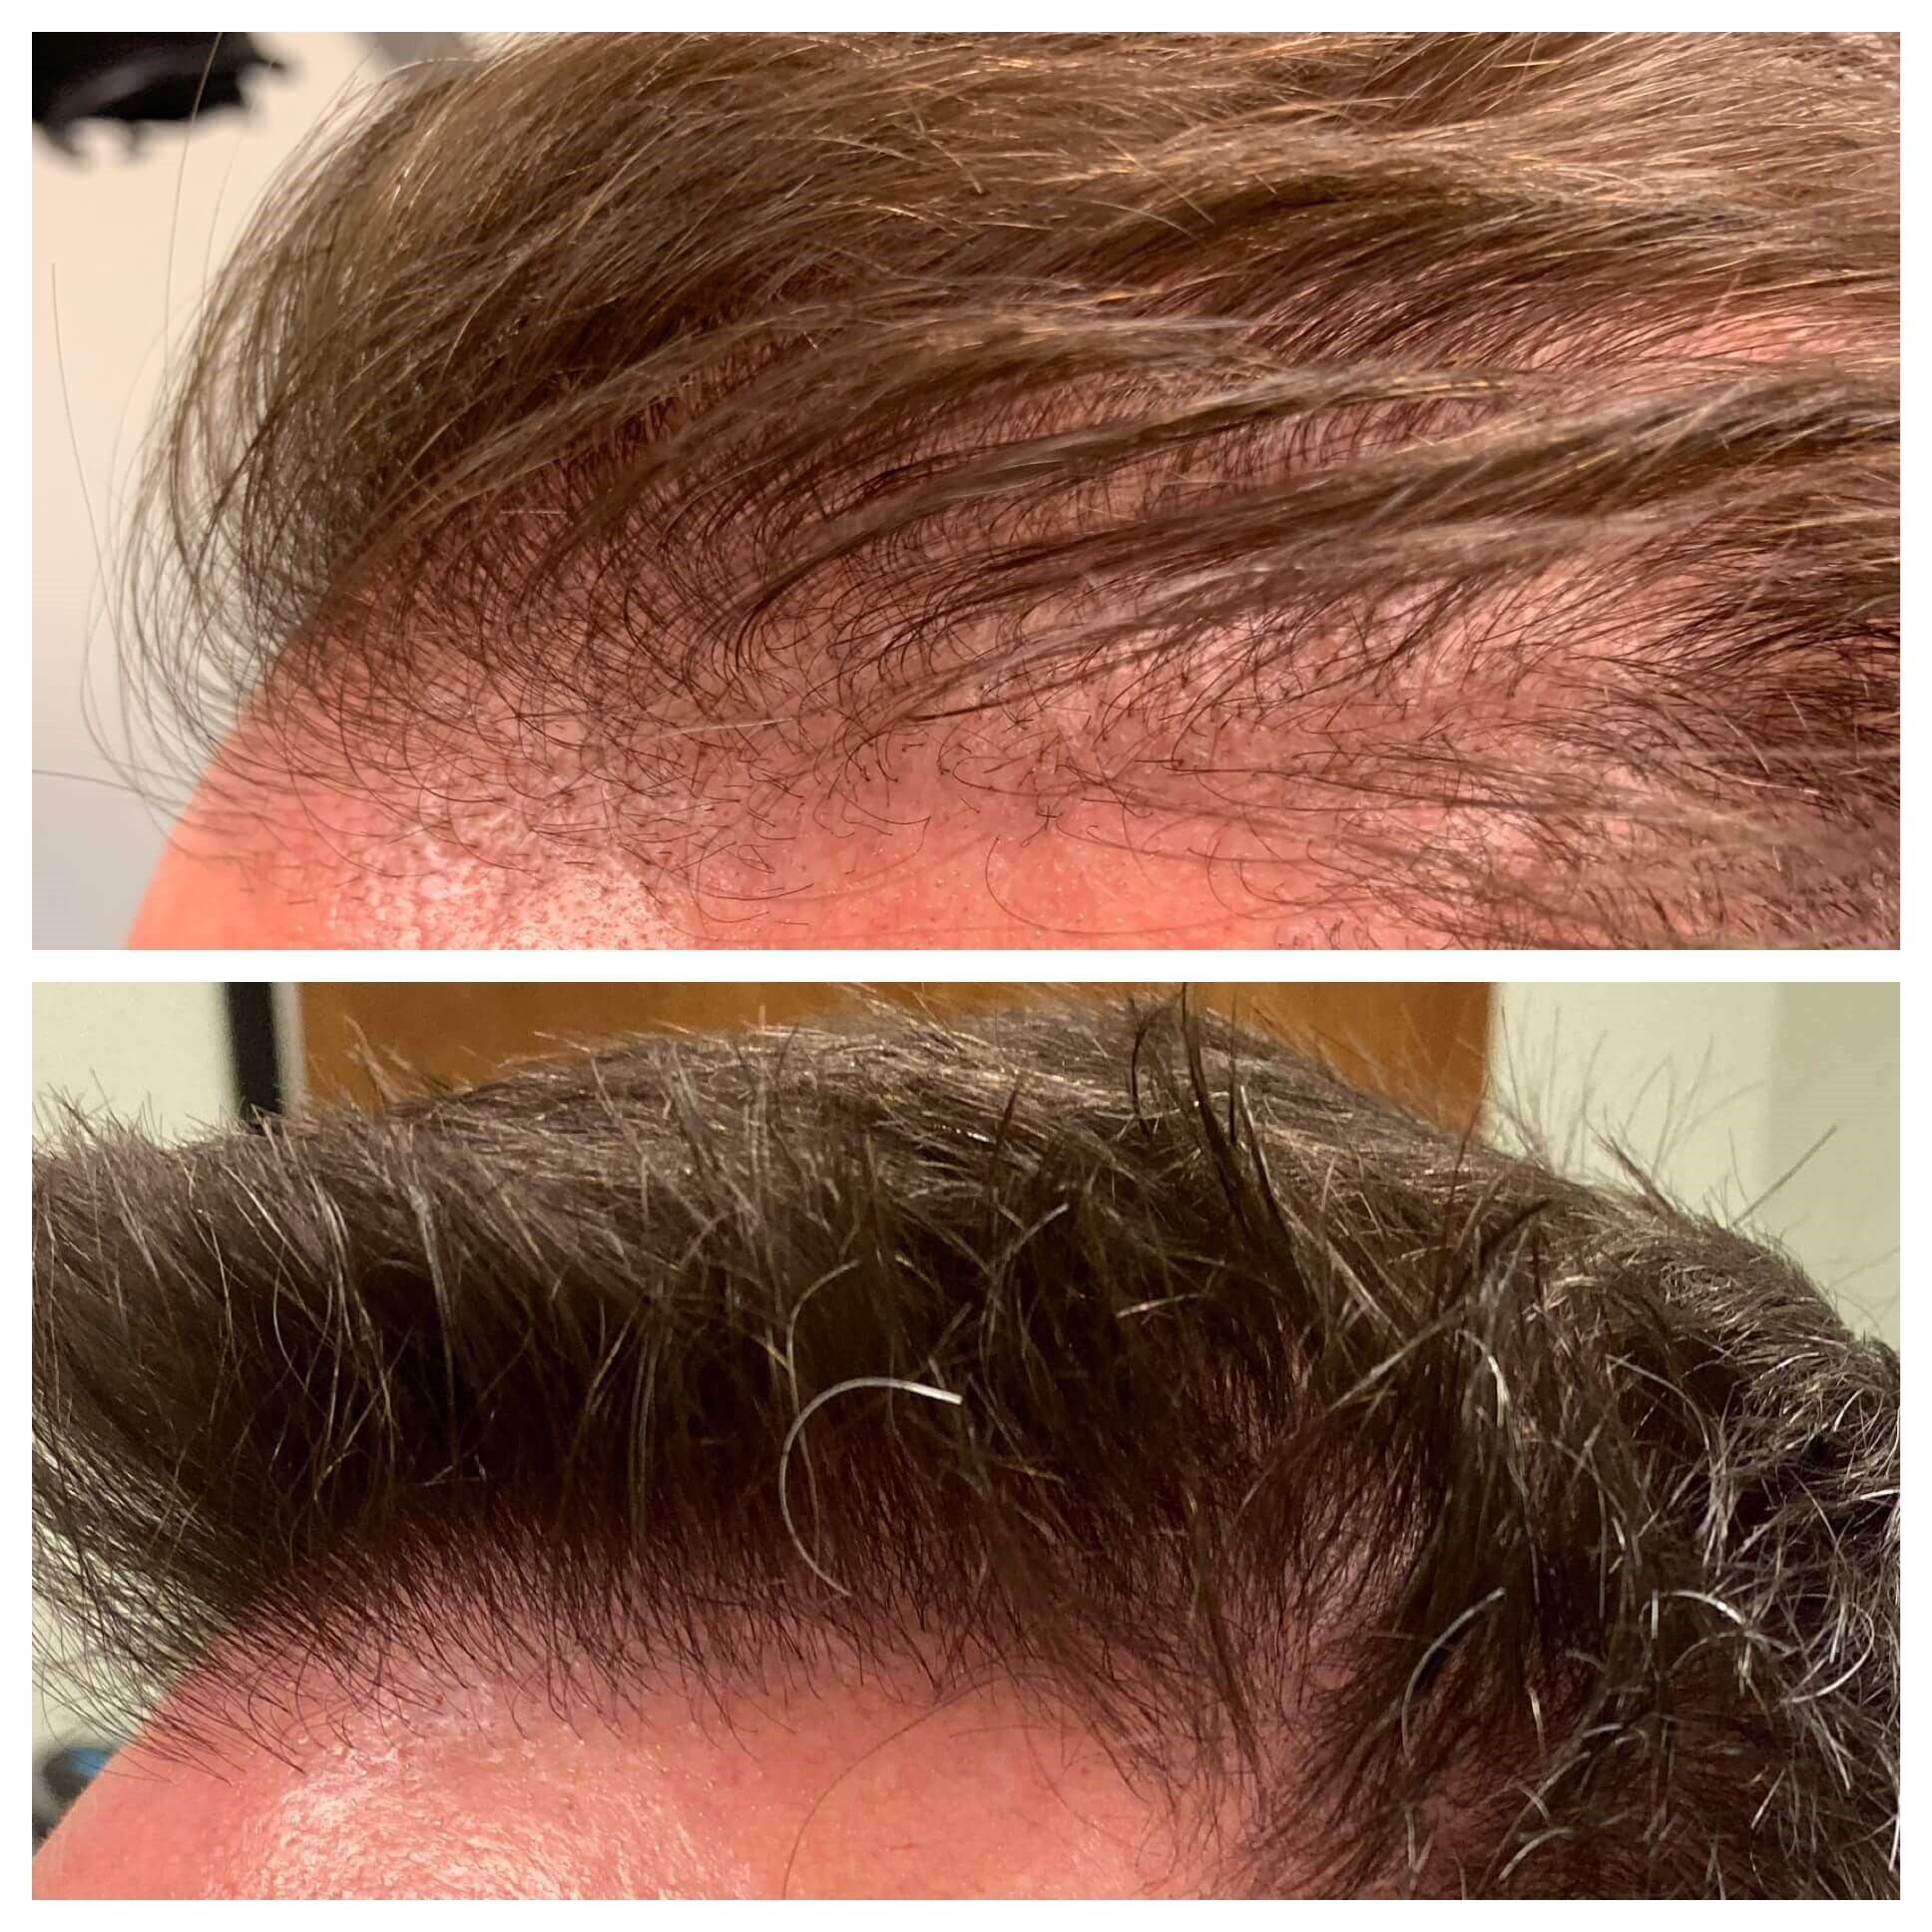 51 Year Old, Male, Phoenix AZ Top: Before  Bottom: 6mo After